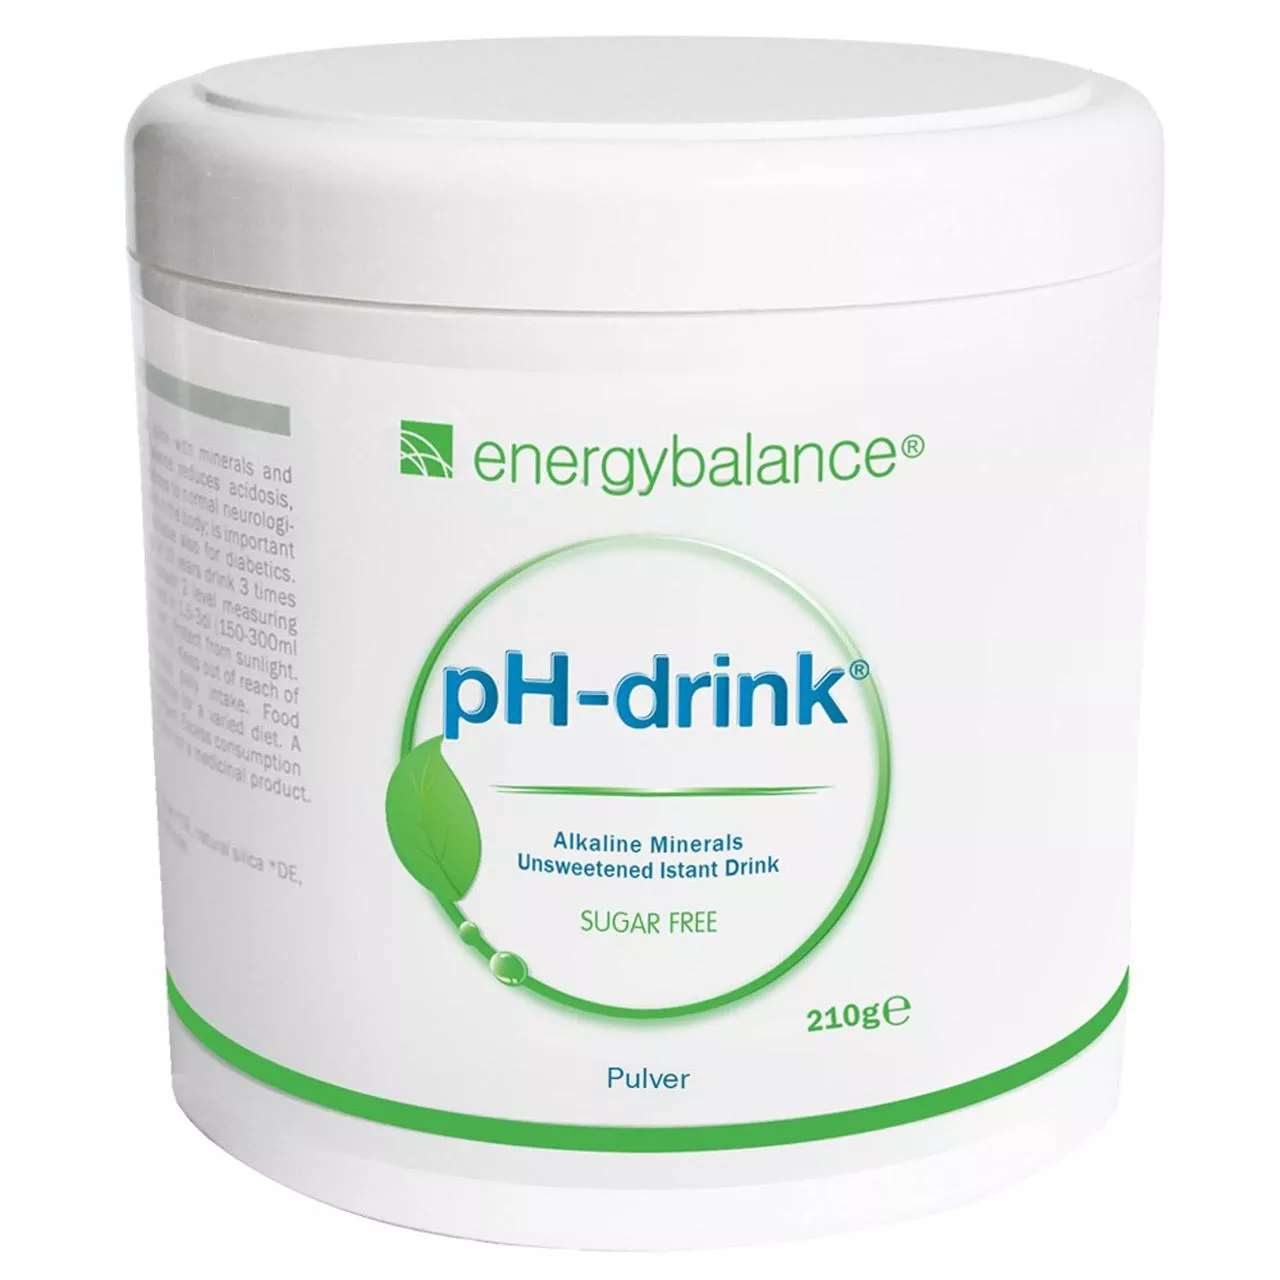 pH-drink Sugar-Free Basendrink, 210g Pulver Sonderangebot